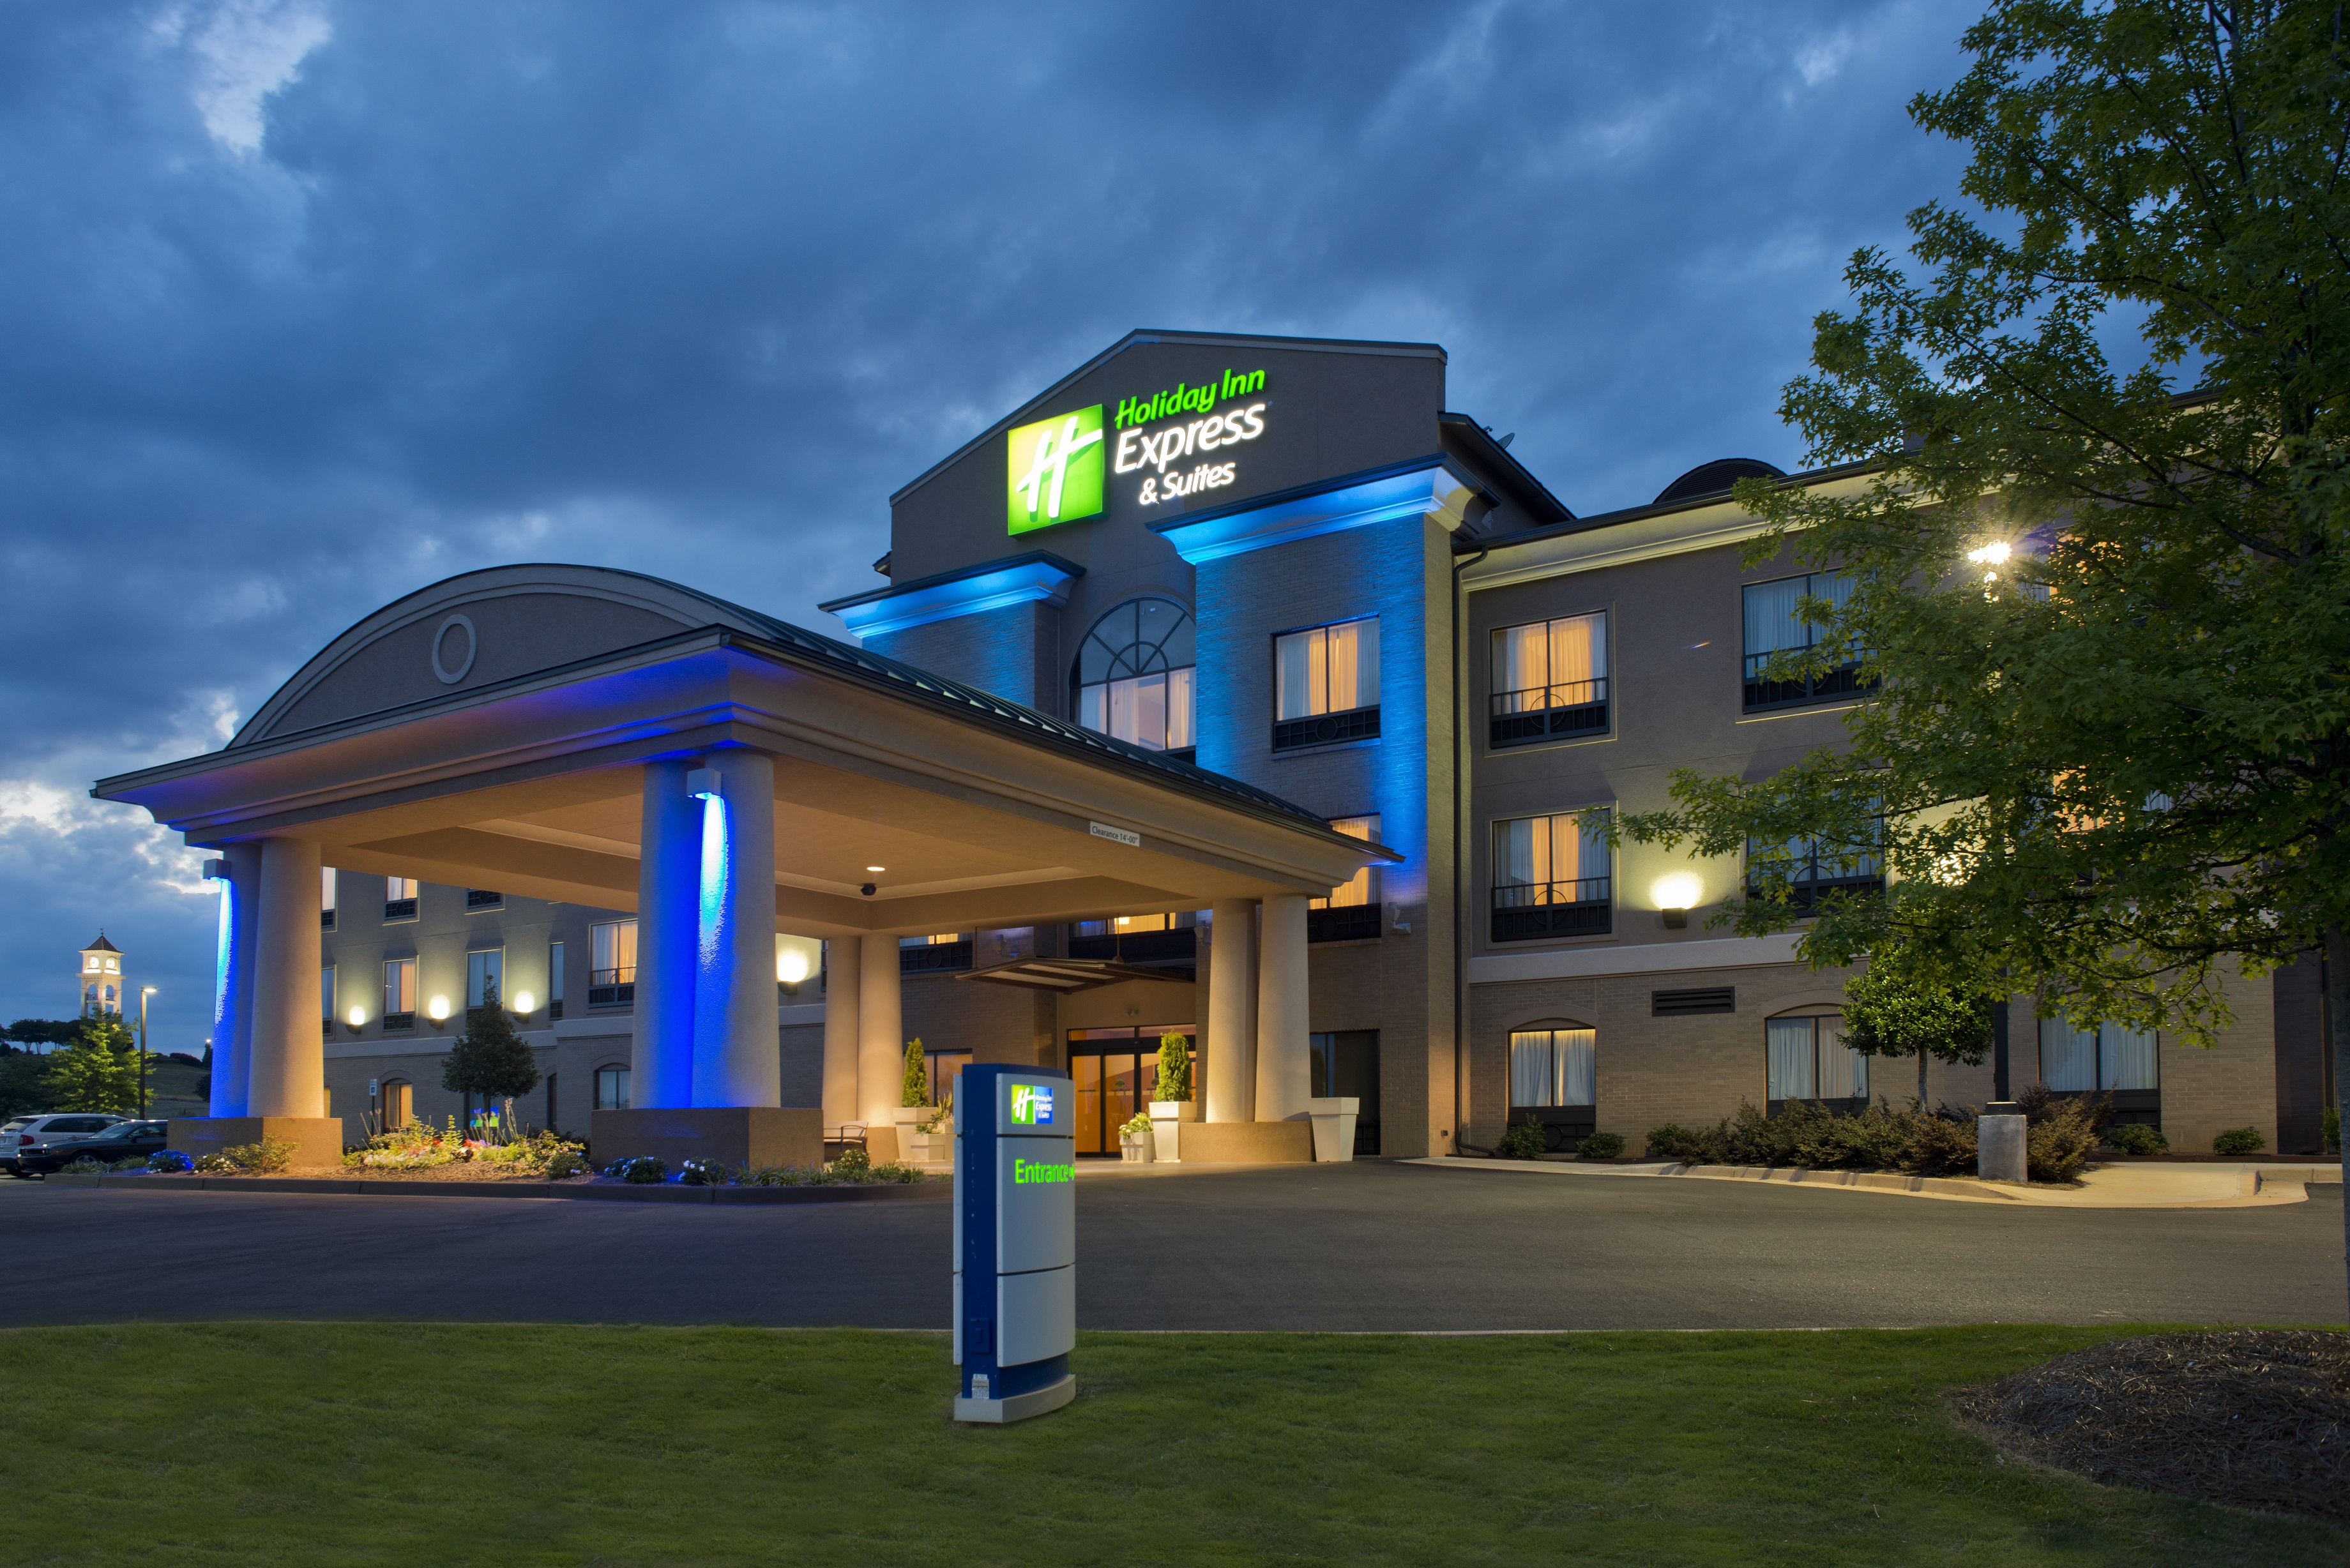 Holiday Inn Express Hotel & Suites Prattville South